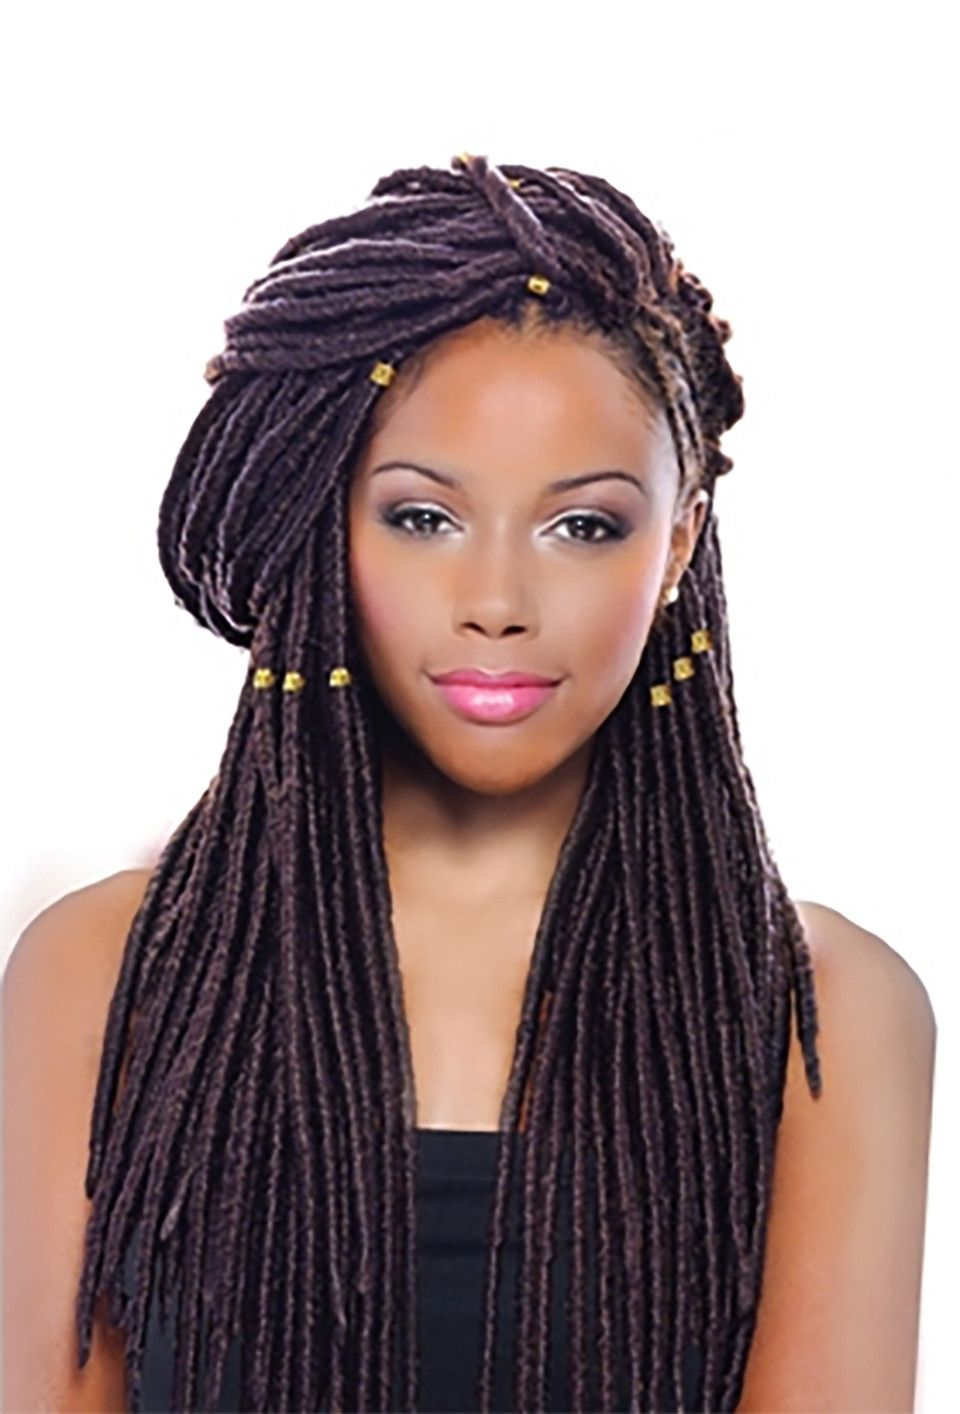 Individual Braids Styles You'll Love